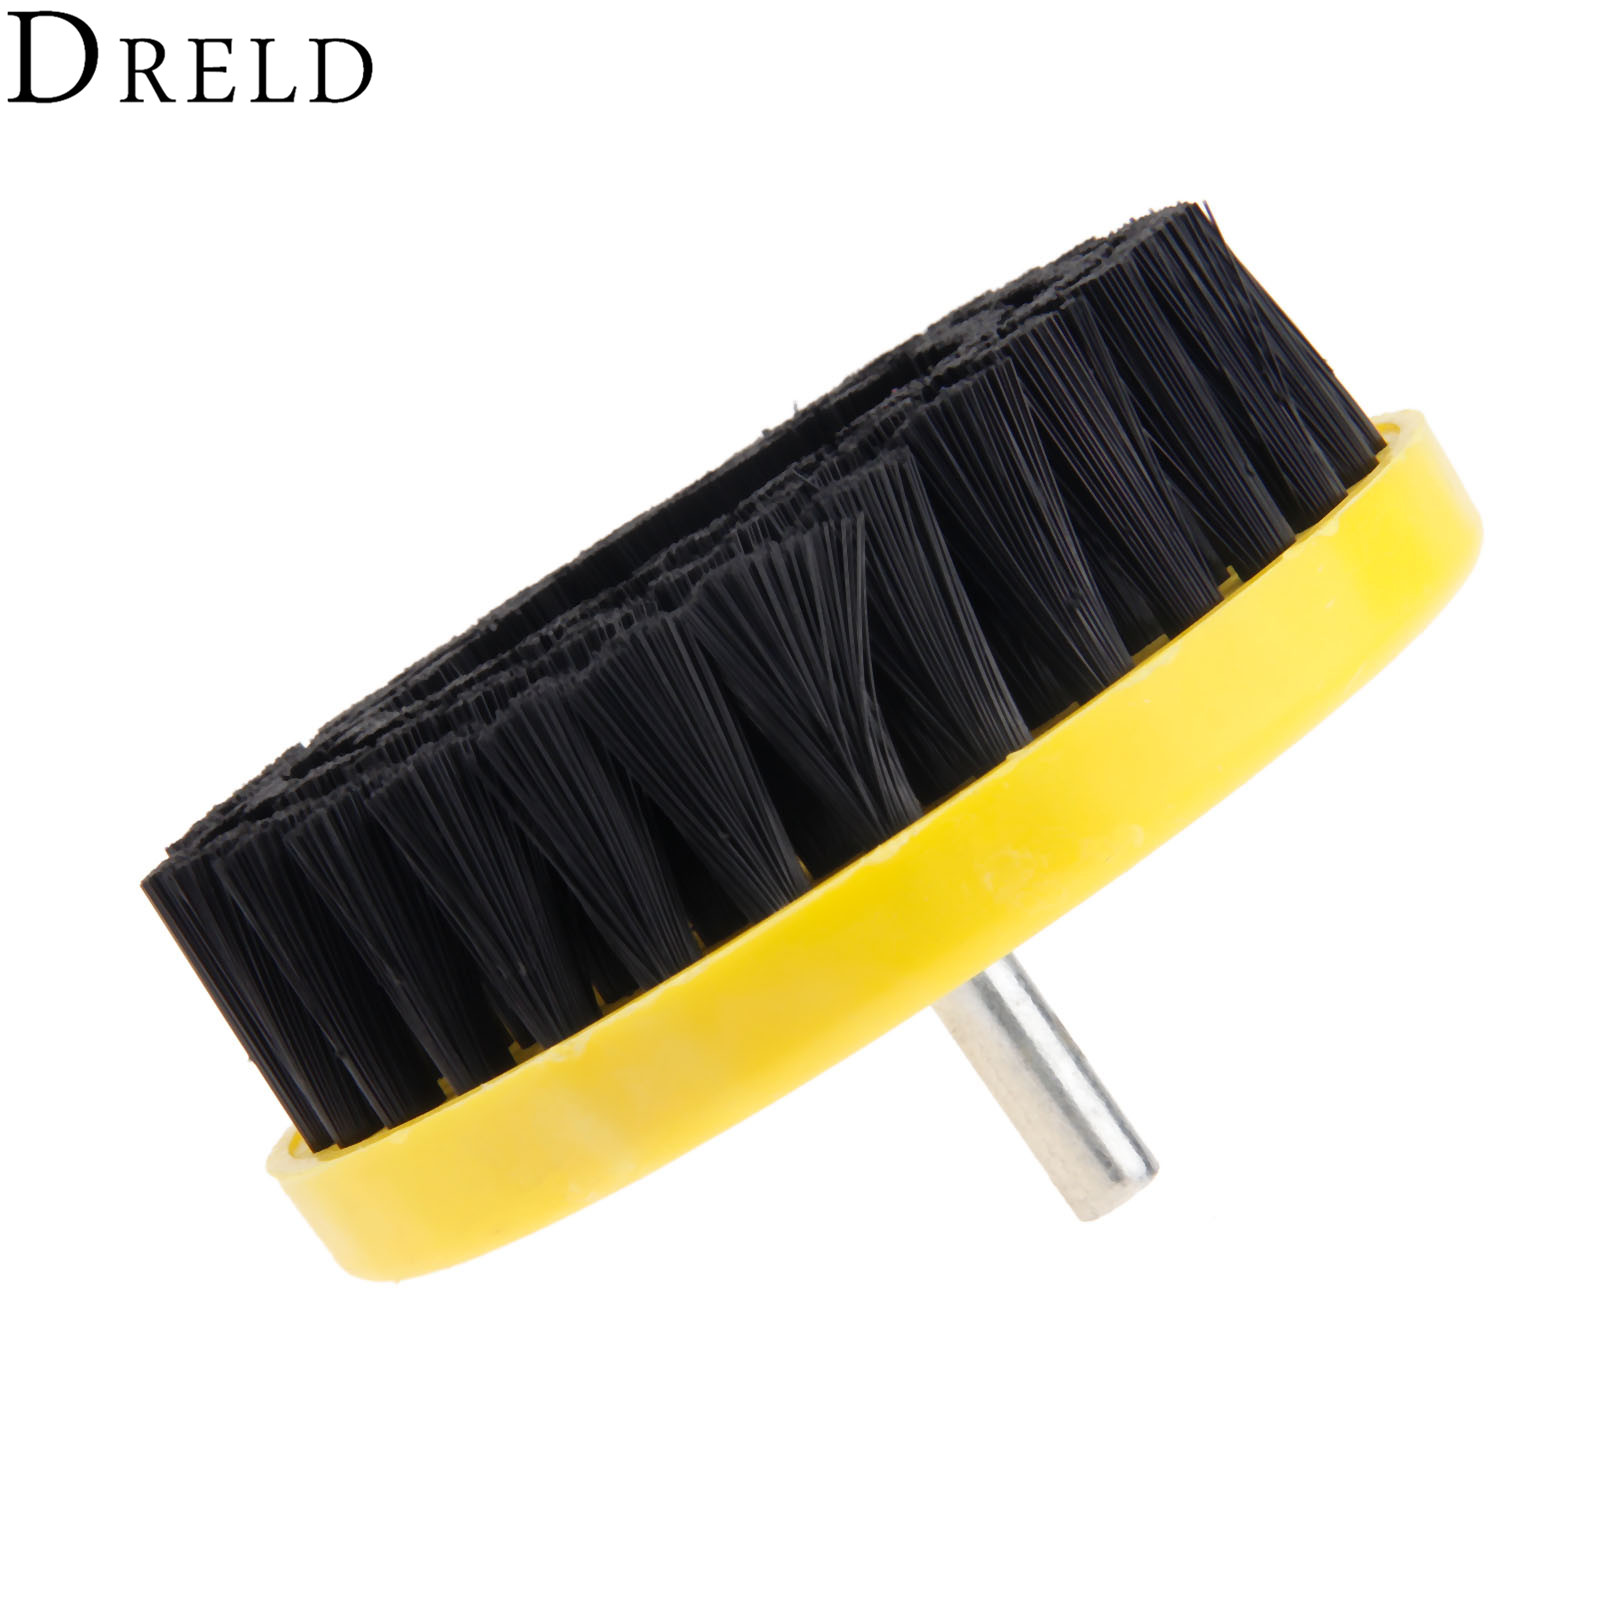 DRELD Black 110mm Electric Power Scrub Drill Brush Clean Brush for Carpet Sofa Leather Plastic Wood Furniture Car Cleaning Tools